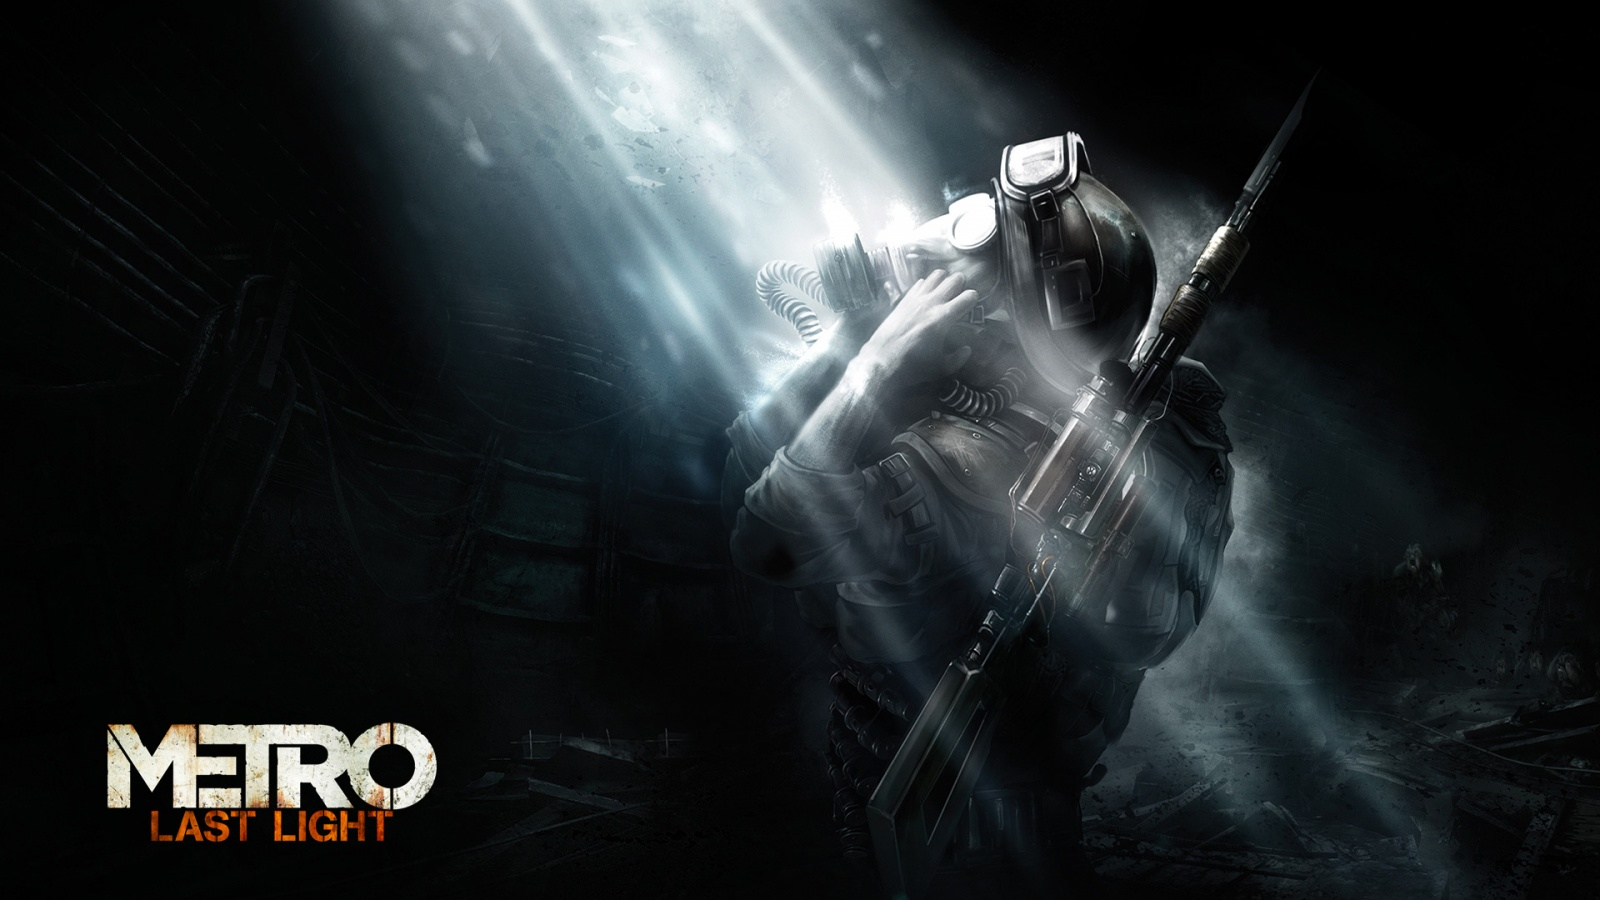 Metro Last Light 2013 Game Wallpapers HD Wallpapers 1600x900